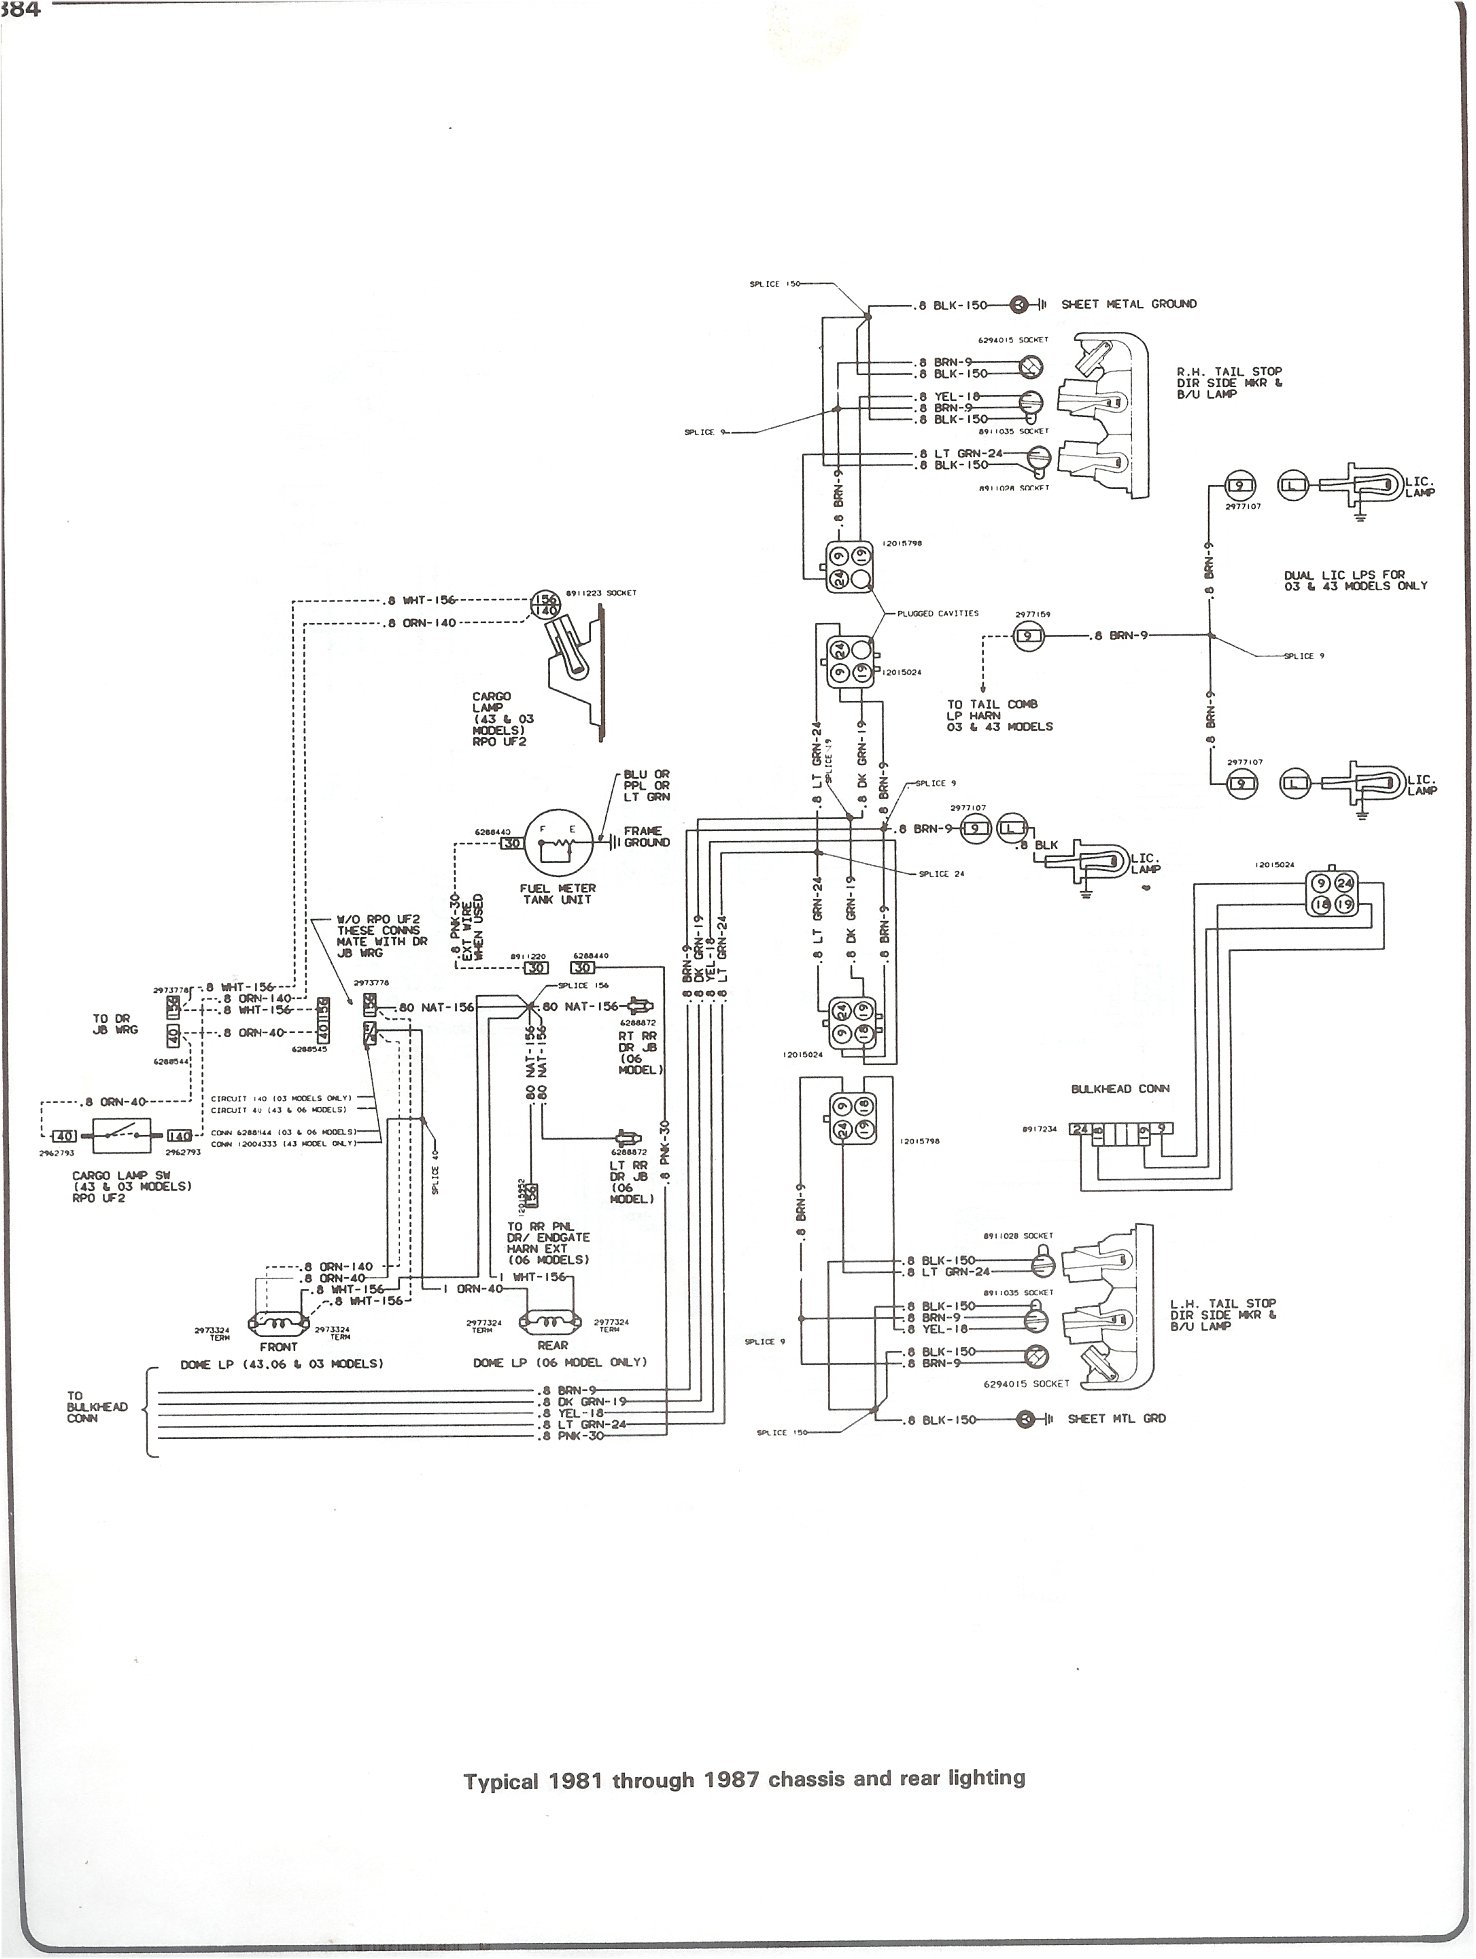 81 87_chass_rr_light wiring diagram 1992 chevy c truck readingrat net 1992 chevy truck wiring diagram at mifinder.co